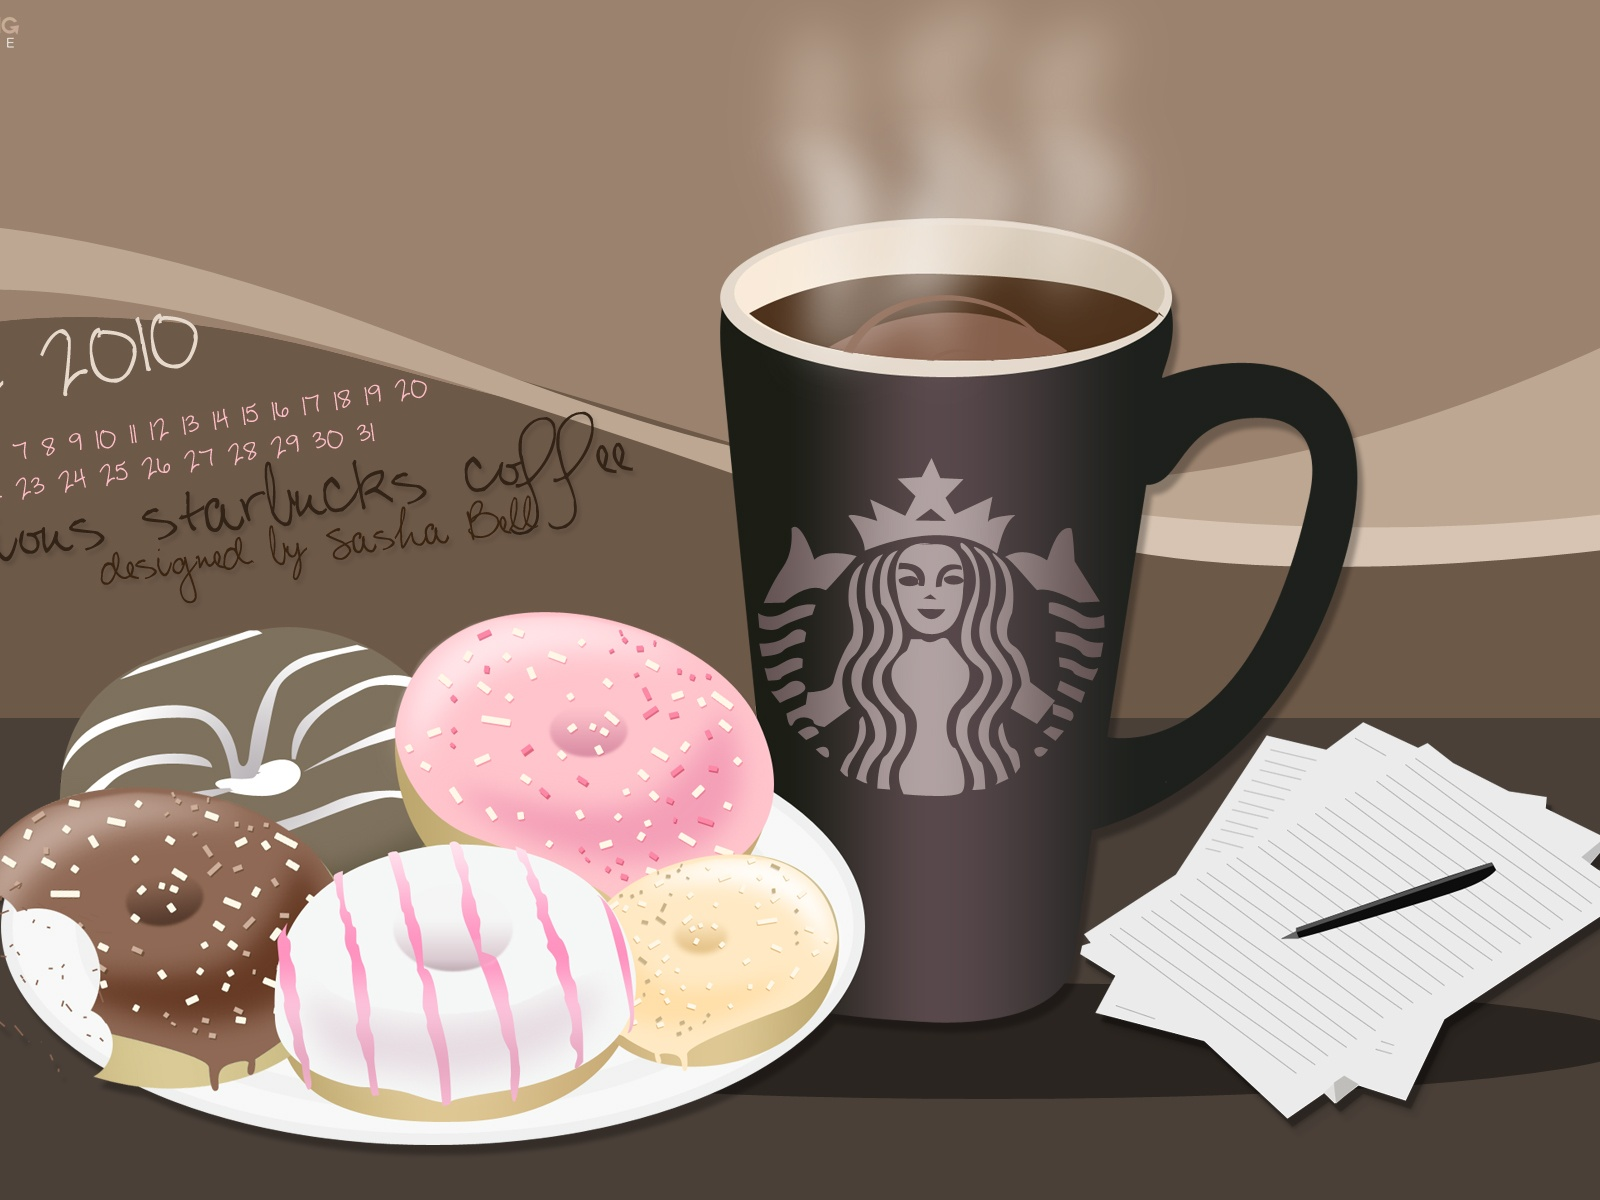 1500x500 Starbucks coffee and donuts